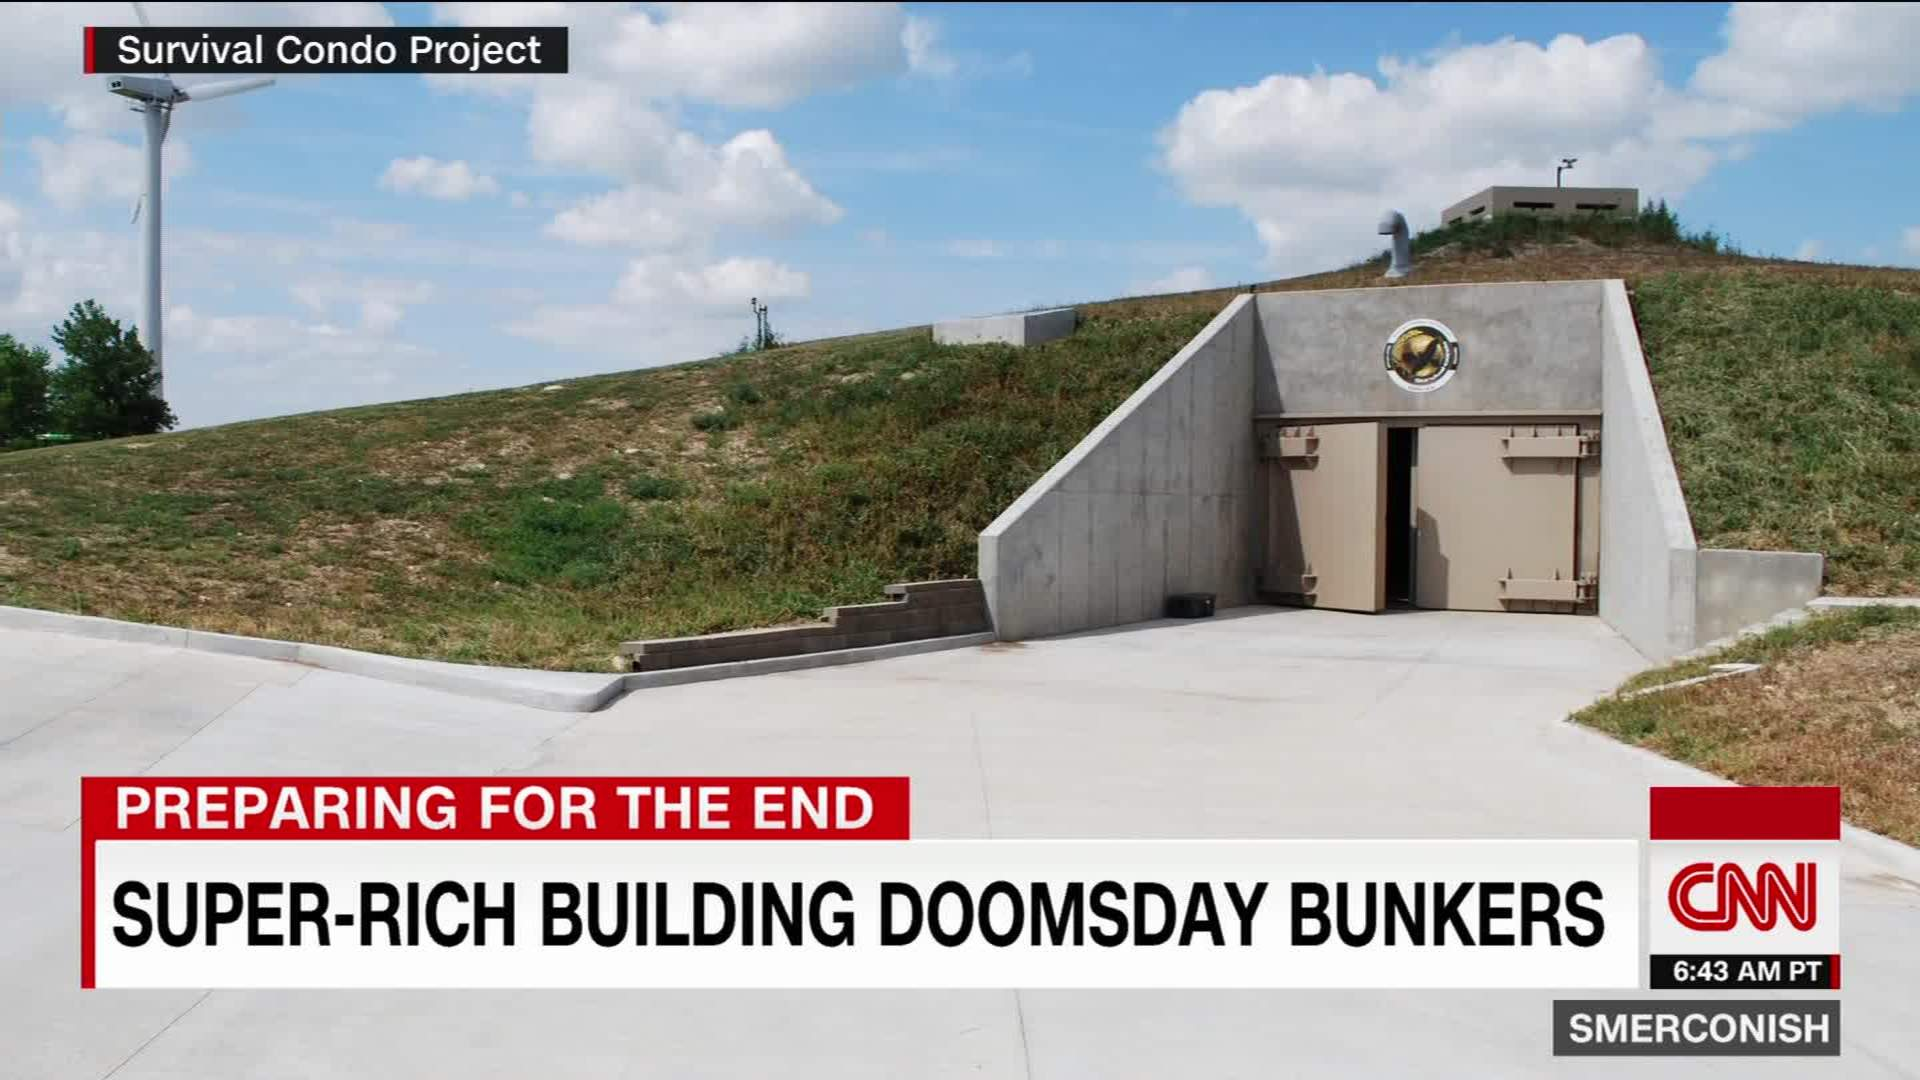 Luxury doomsday bunkers: How the mega-rich are preparing for the